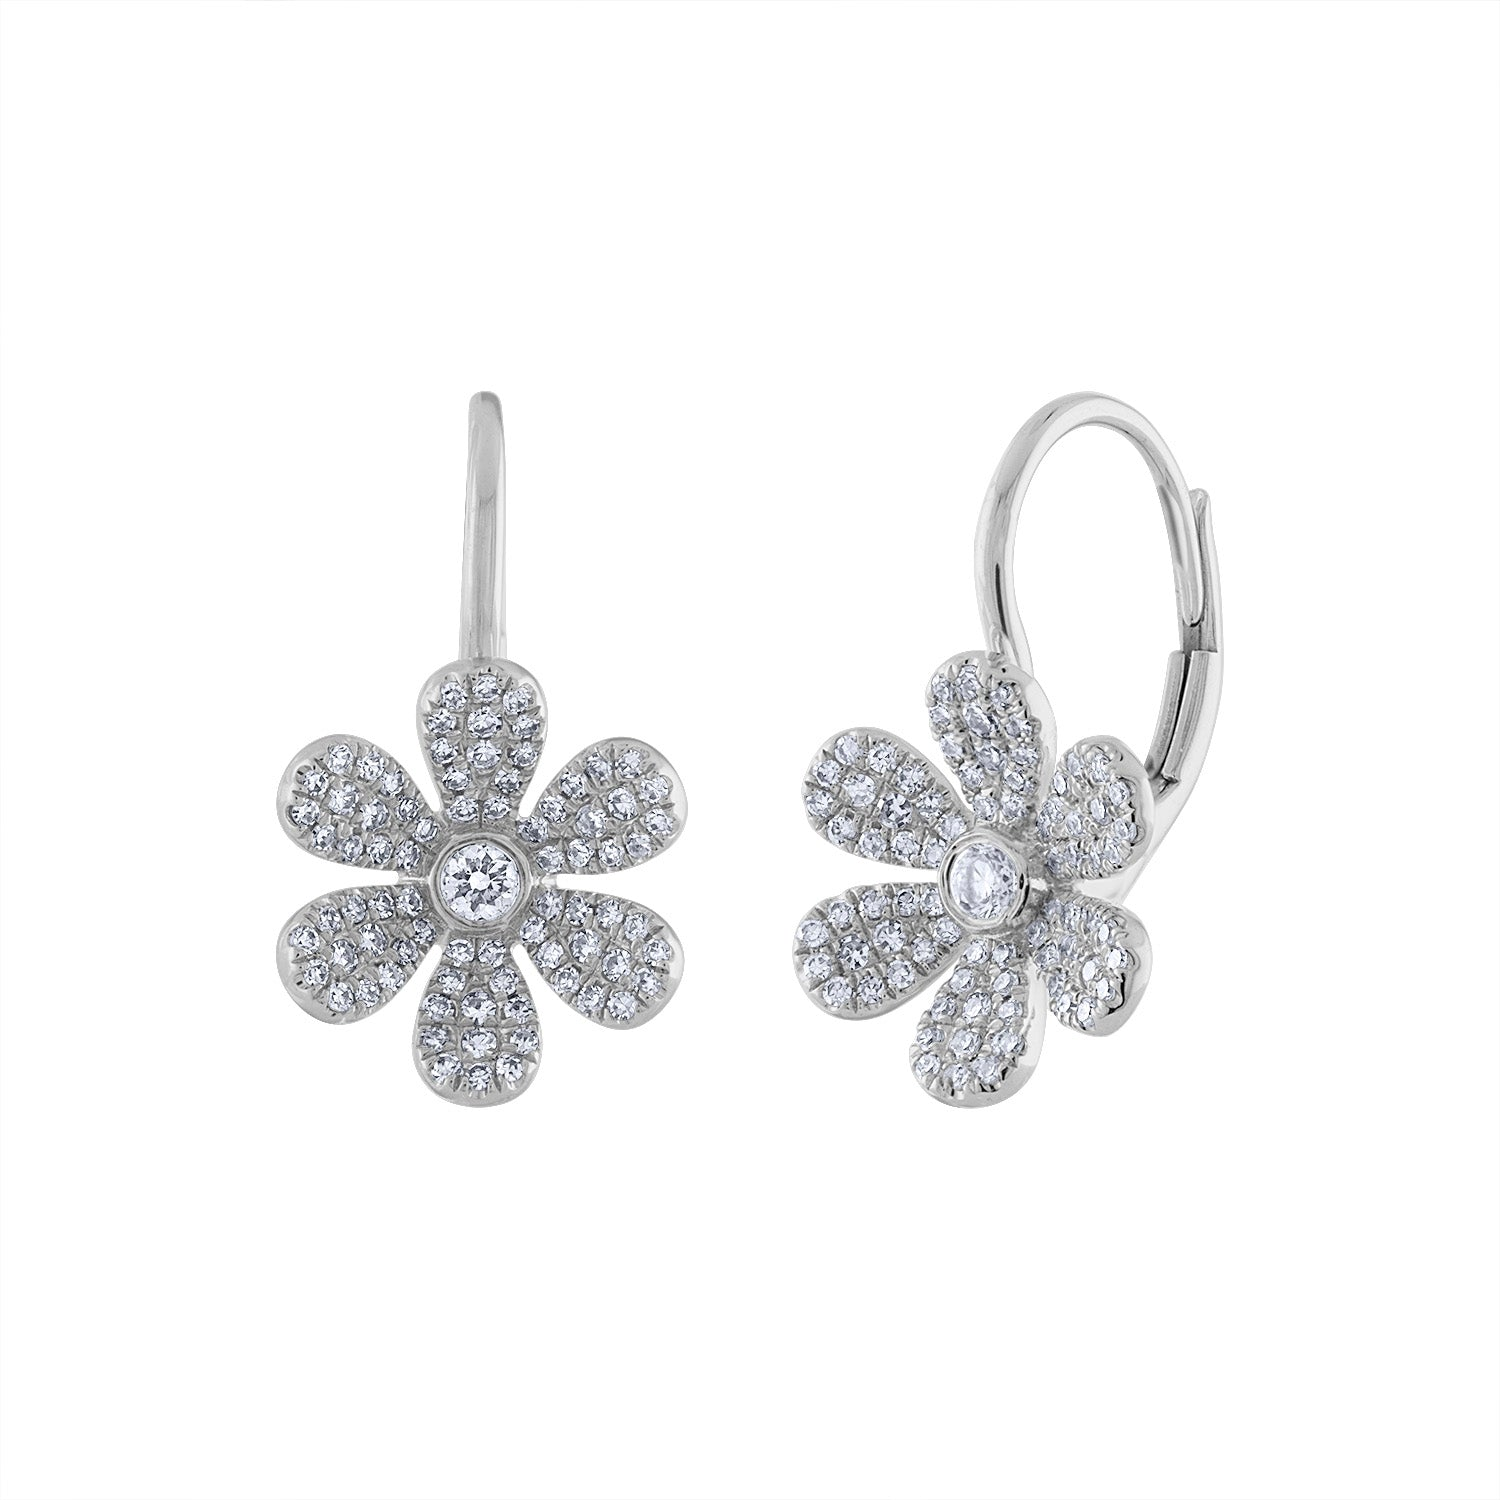 14K White Gold daisy diamond earring